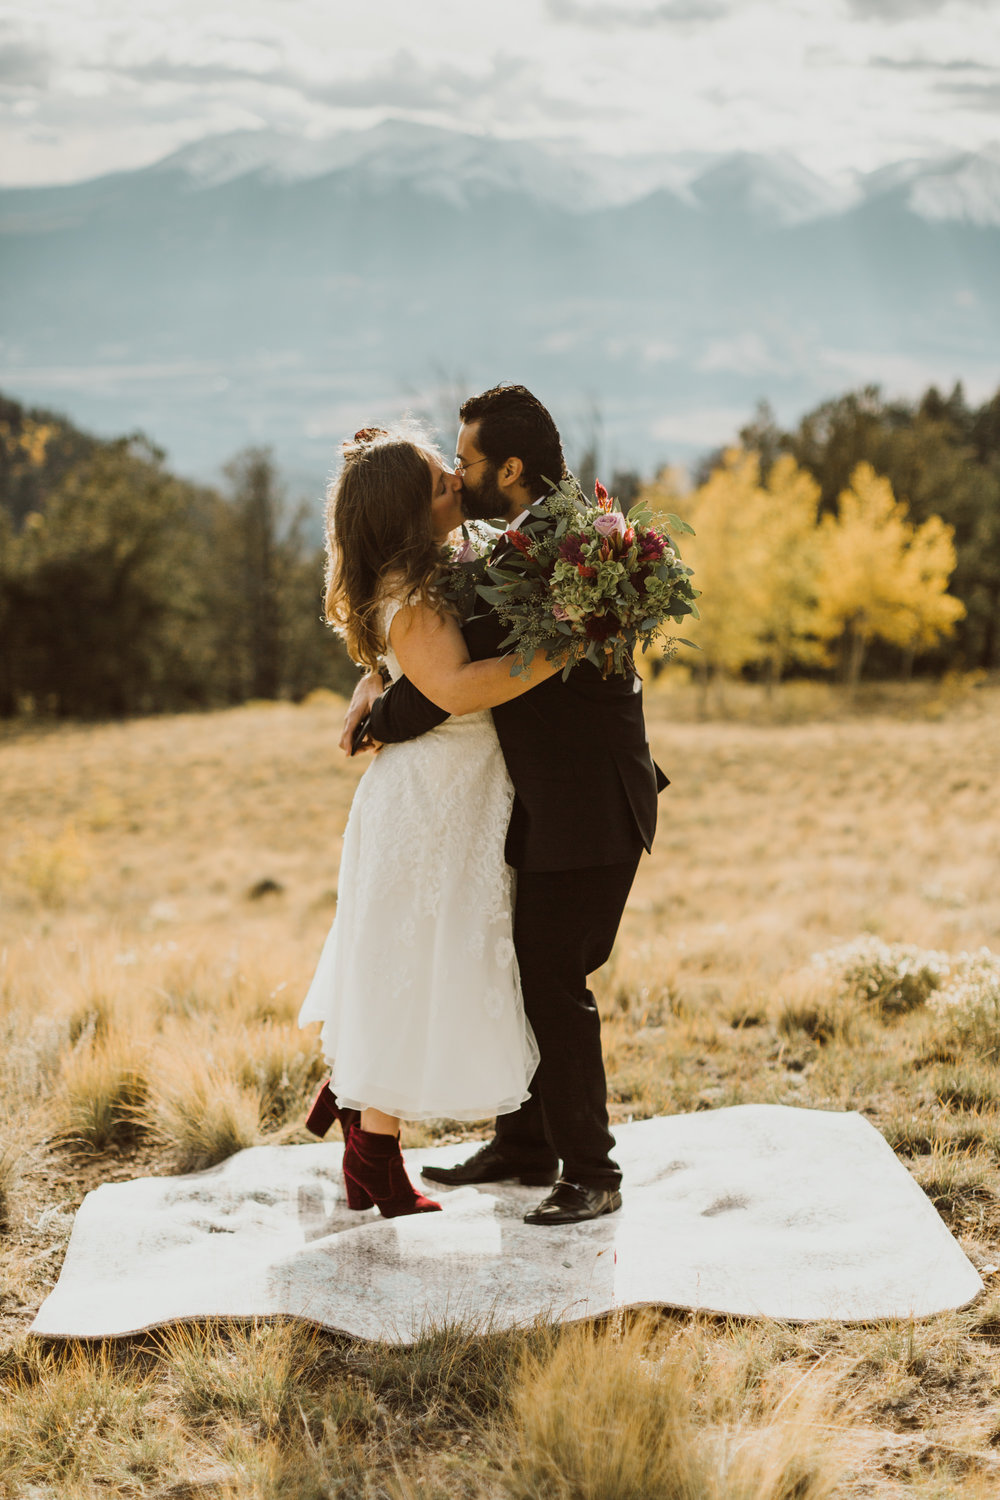 buena-vista-aspen-ridge-colorado-elopement-13.jpg